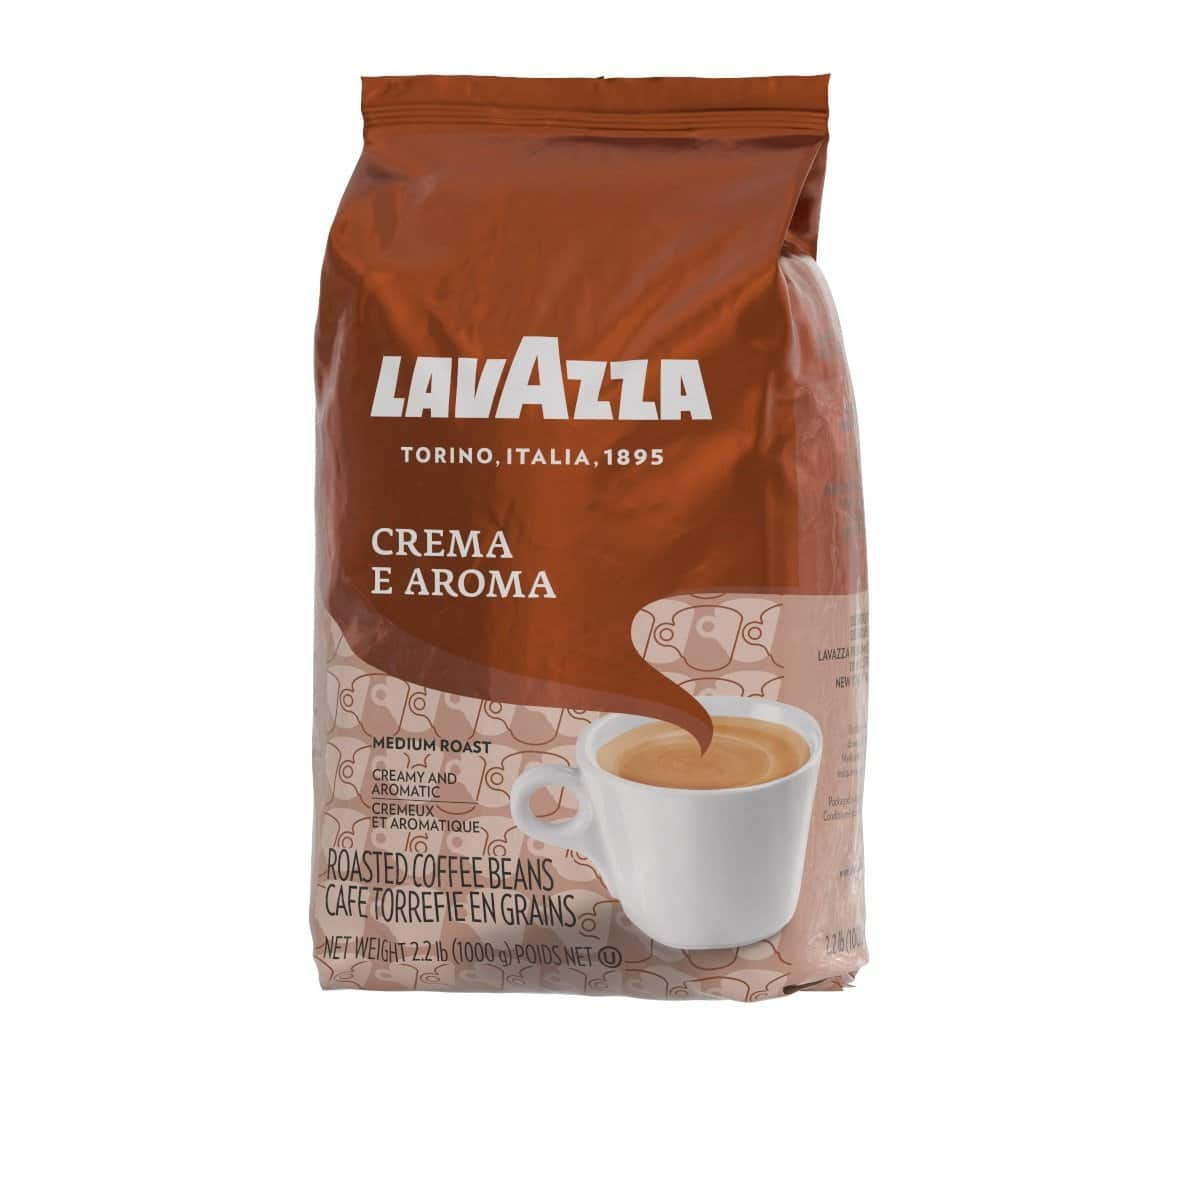 Lavazza Crema e Aroma Whole Bean Coffee Blend, Medium Roast, 2.2-Pound Bag $12.99 + FS w/ Prime @ Amazon